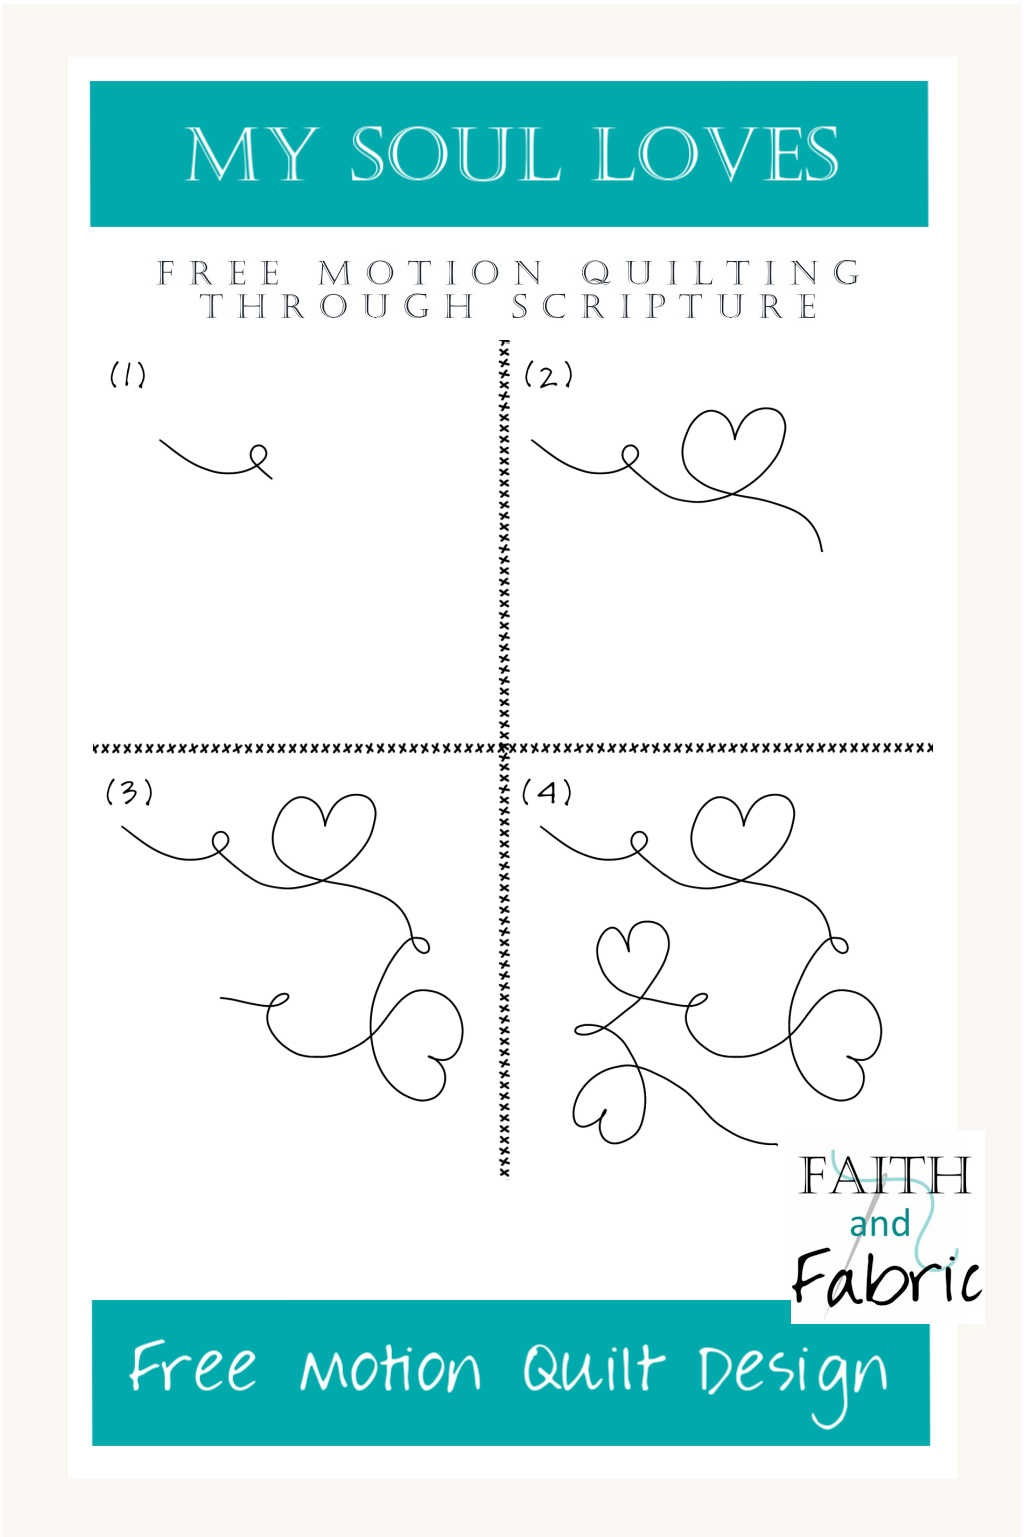 Learn to free motion quilt chain hearts! You'll learn how to sew meandering hearts, varying their size and shape, with key tips and video tutorial.